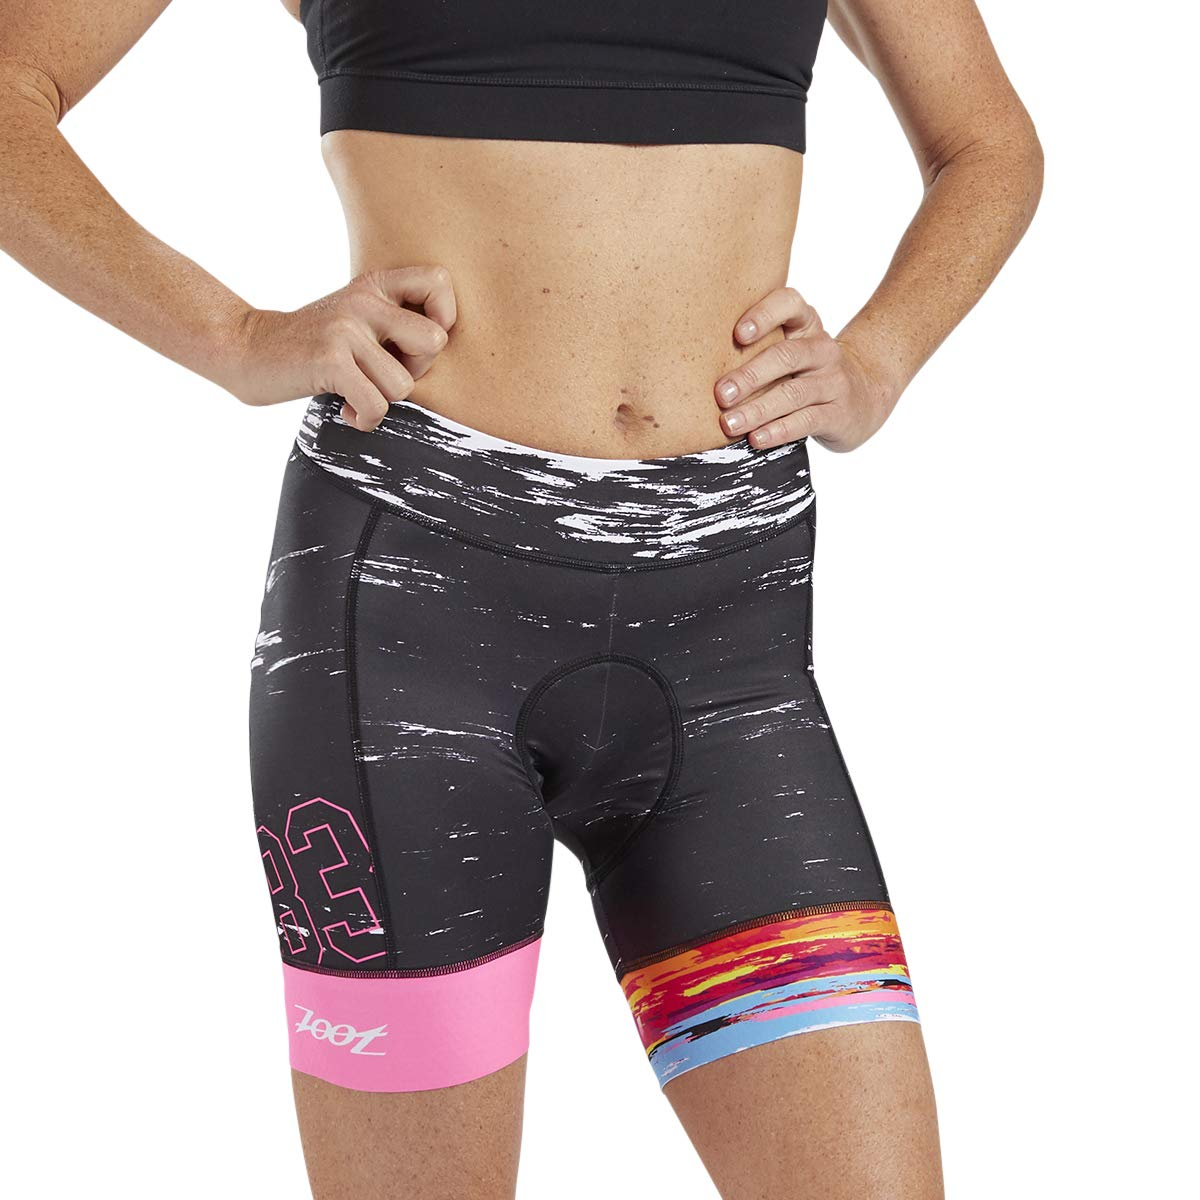 Zoot LTD Women's 7-Inch Cycling Shorts – Performance Cycle Shorts with TMF Chamois (83, X Small)